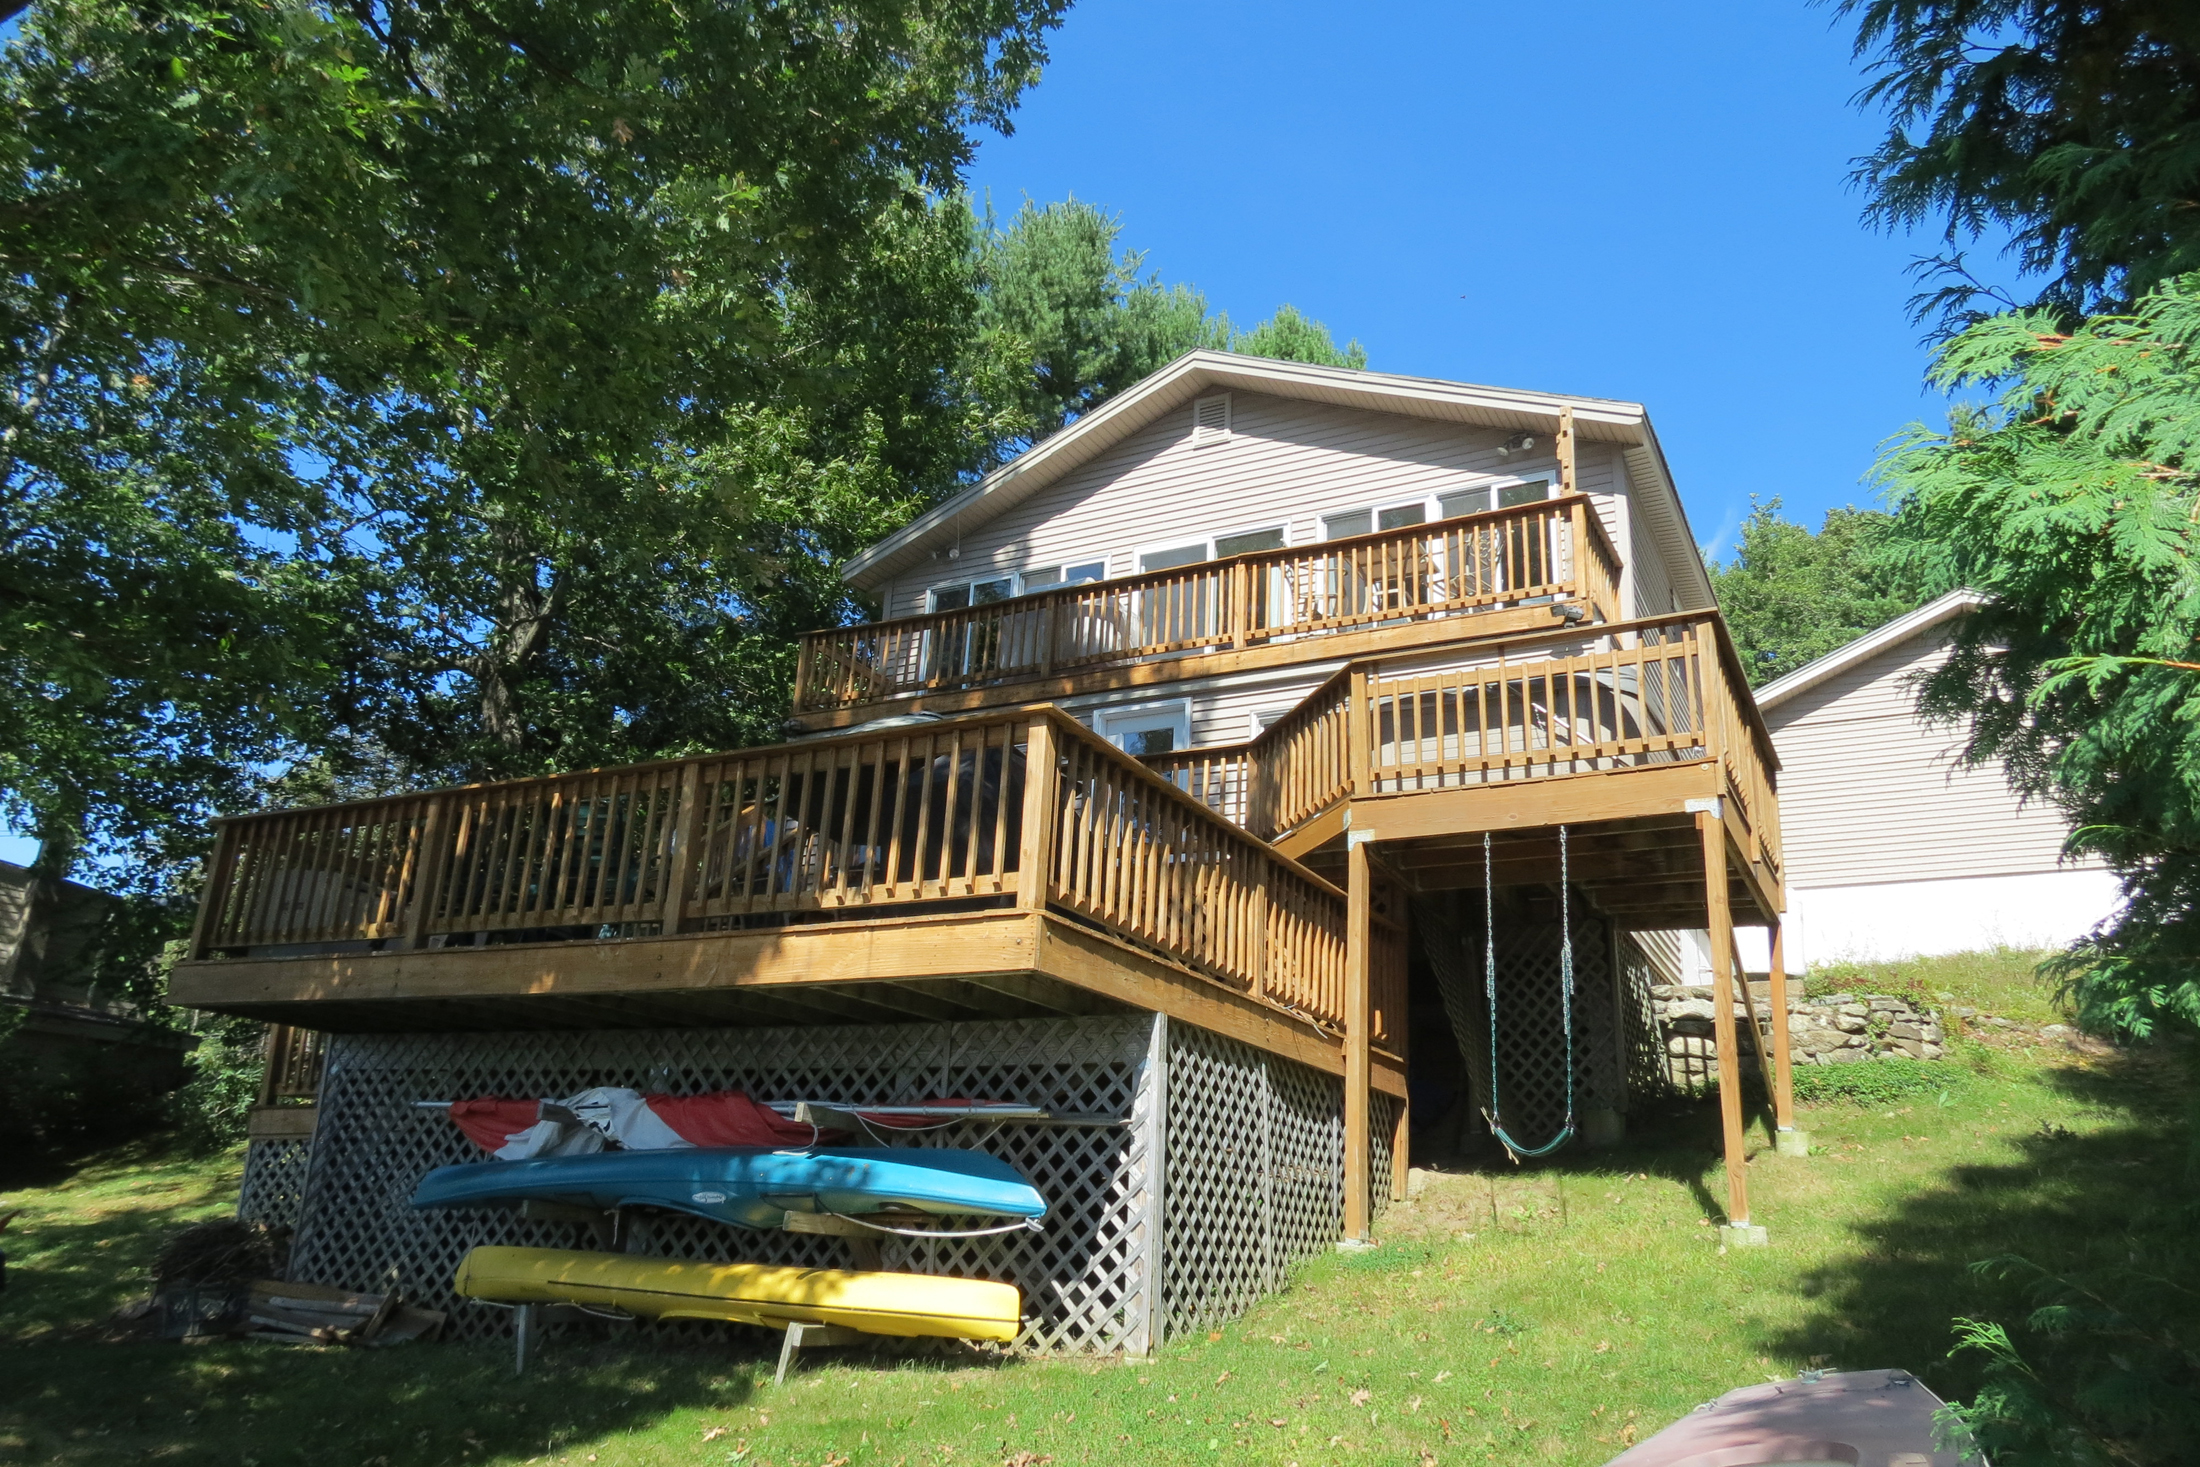 Single Family Home for Sale at Commuter's Dream - Northwood Lake Waterfront 1585 1st Nh Tpke Northwood, New Hampshire, 03261 United States